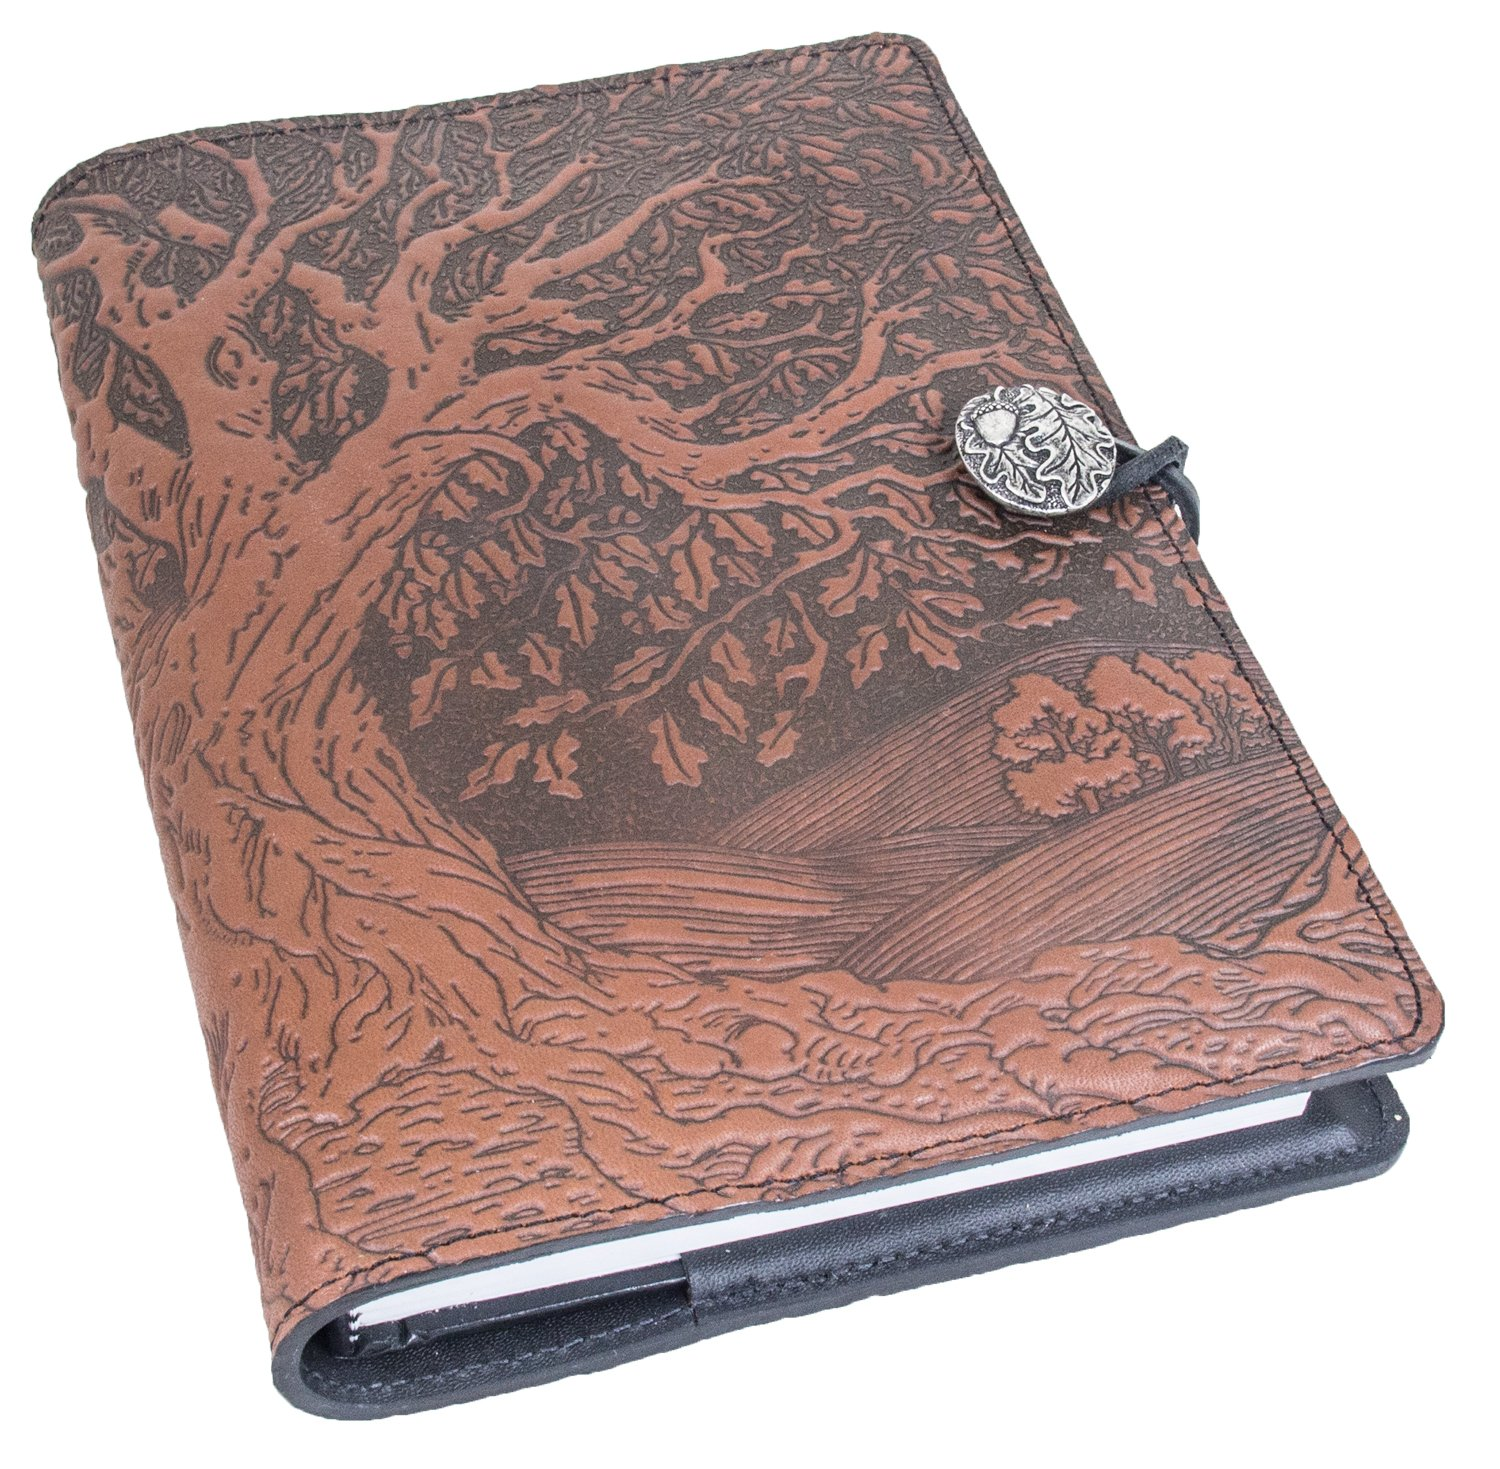 Genuine Leather Refillable Journal Cover with a Hardbound Blank Insert, 6x9 Inches, Tree of Life, Saddle with a Pewter Button, Made in the USA by Oberon Design by Oberon Design (Image #1)